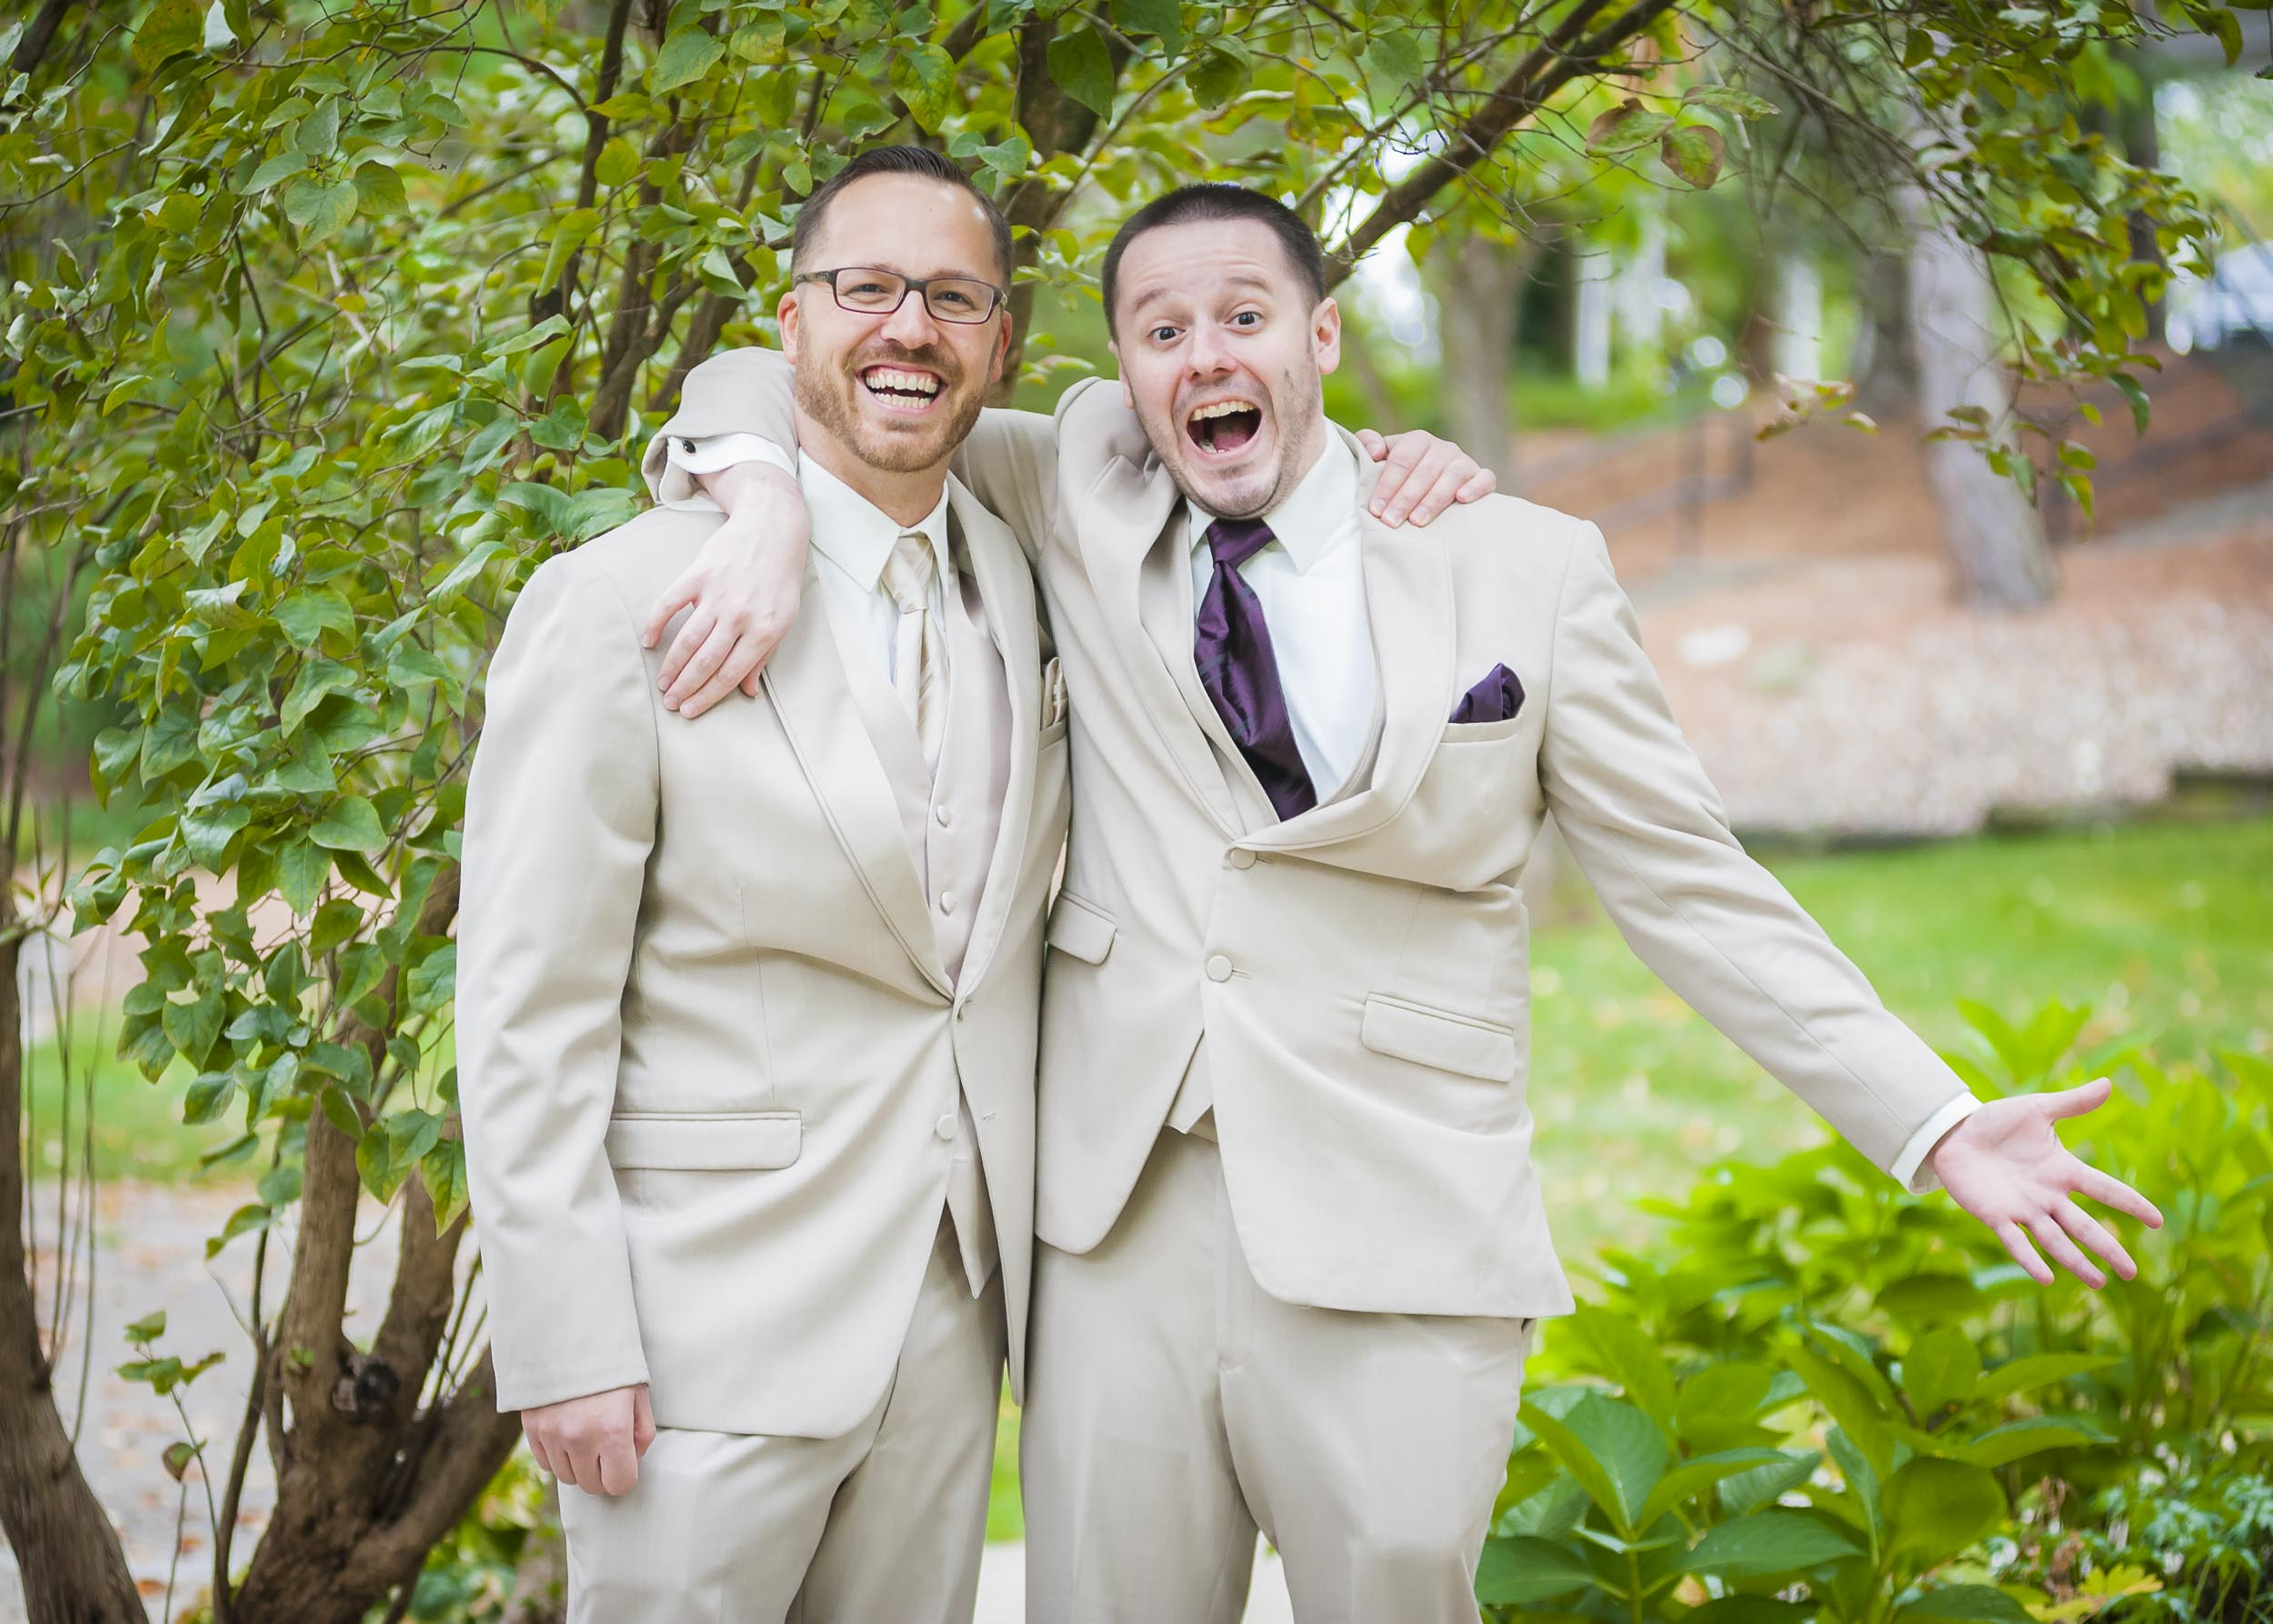 Having a little fun with the groom for the camera.